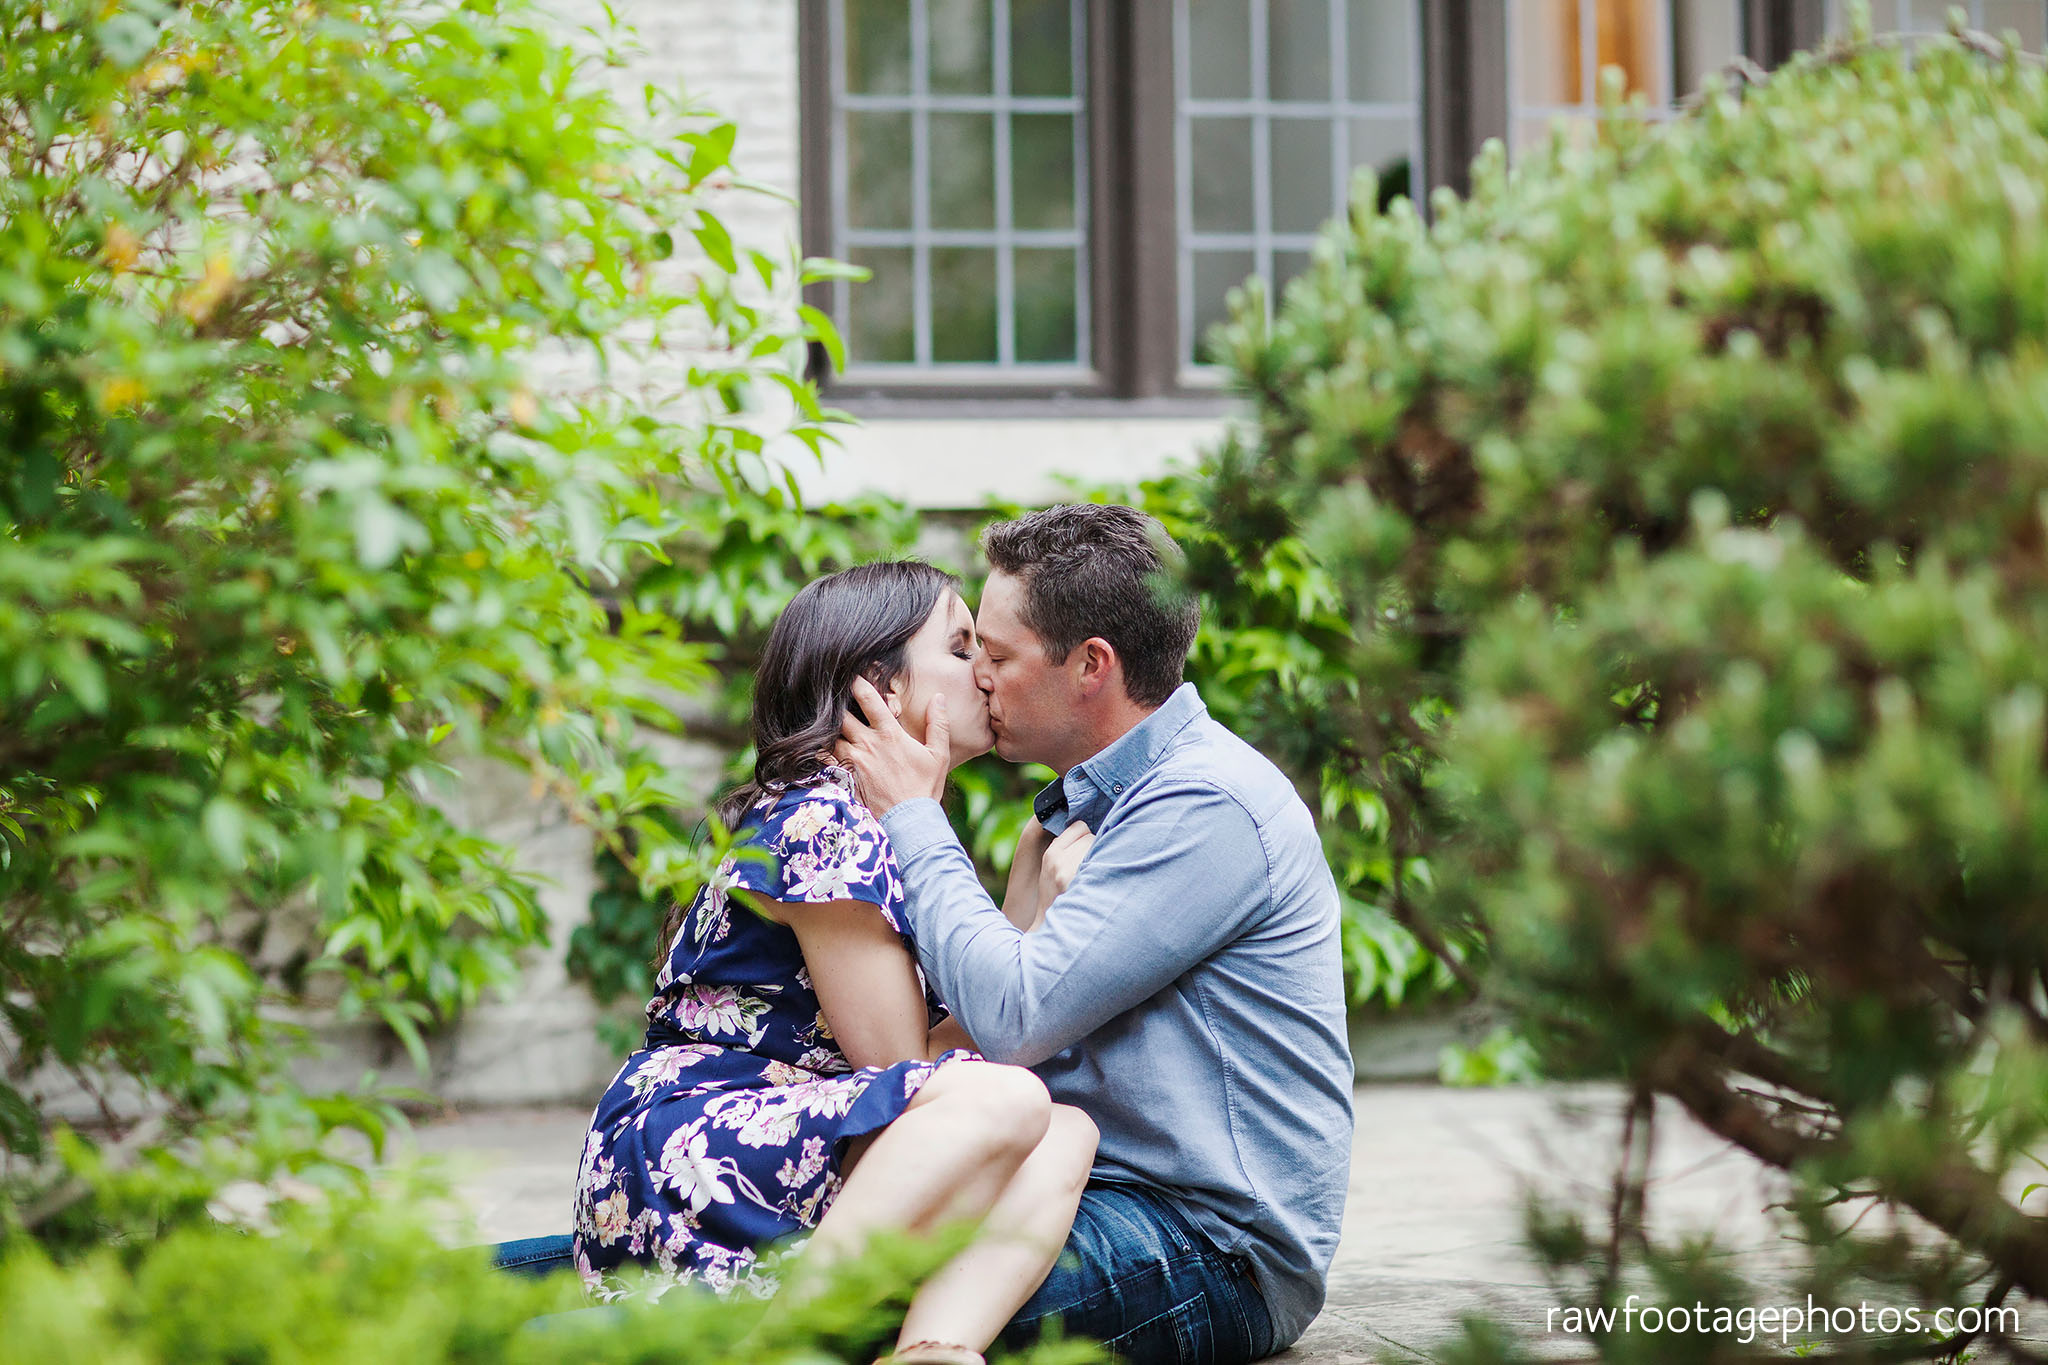 london_ontario_wedding_photographer-raw_footage_photography-engagement_session-campus_session-kings_college-uwo-spring_blooms023.jpg